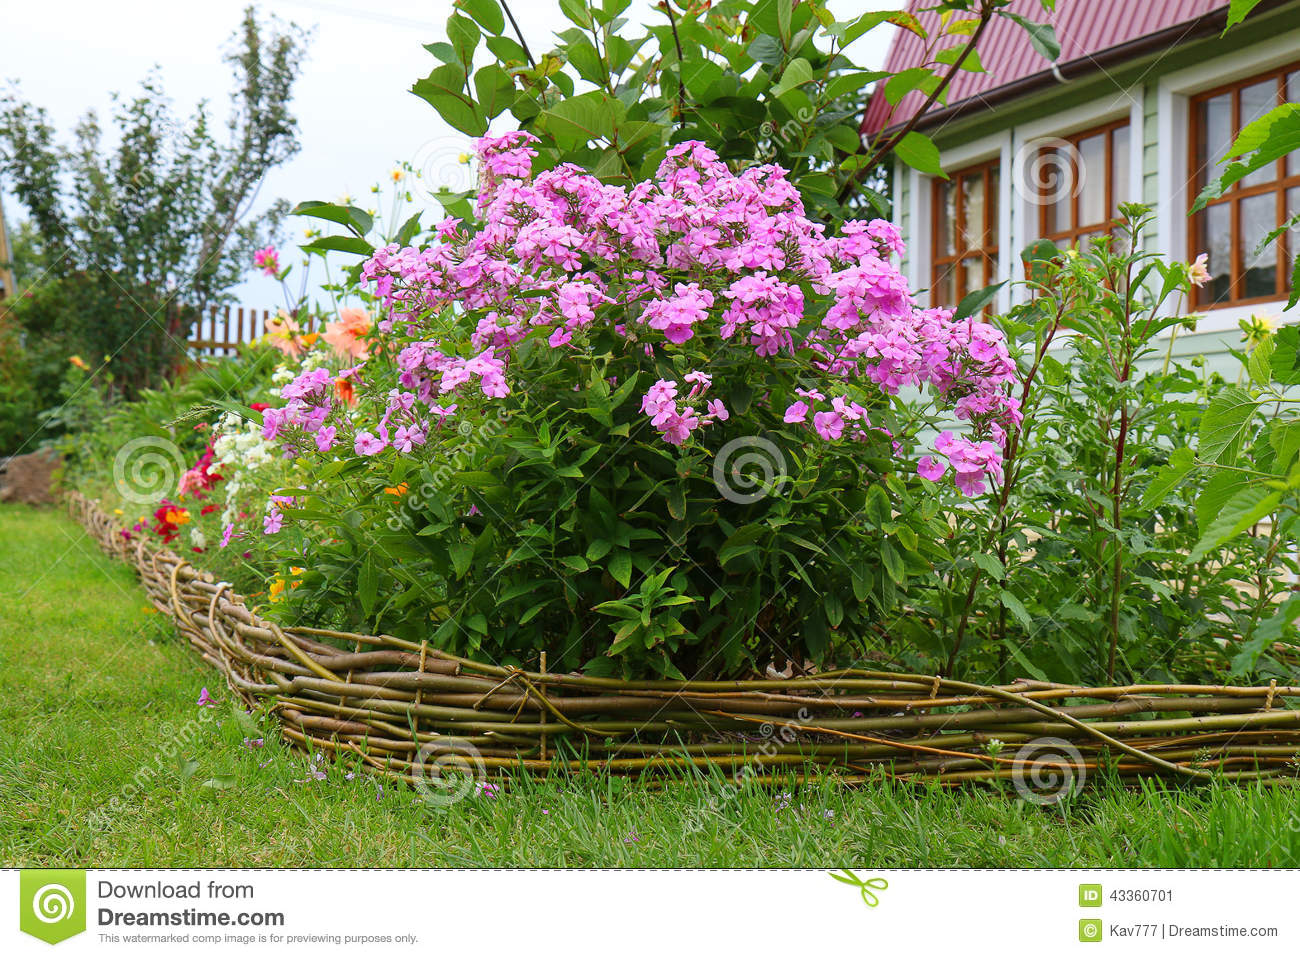 Phlox Paniculata In Bloom Stock Image. Image Of Outdoor